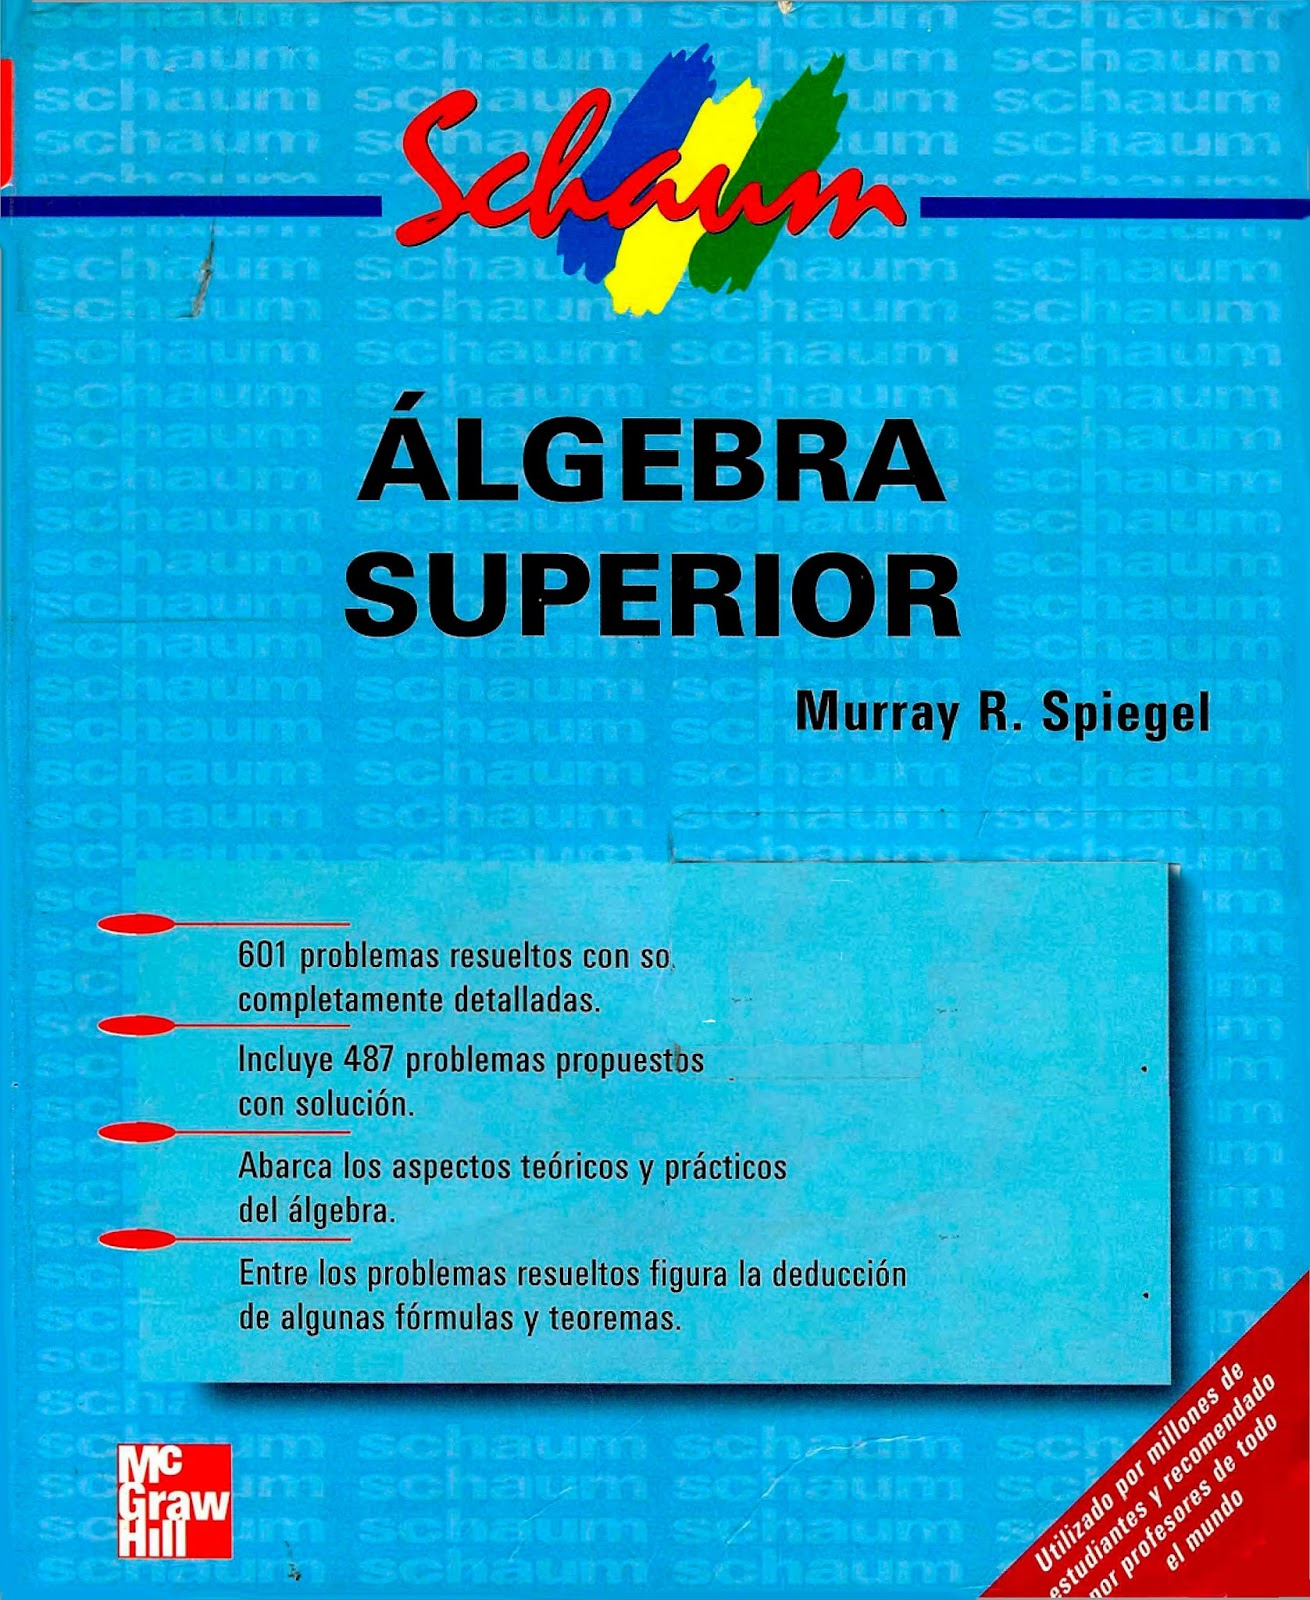 ALGEBRA SUPERIOR - MURRAY SPIEGEL %25C3%2581lgebra-Superior---Murray-R.-Spiegel-FREELIBROS